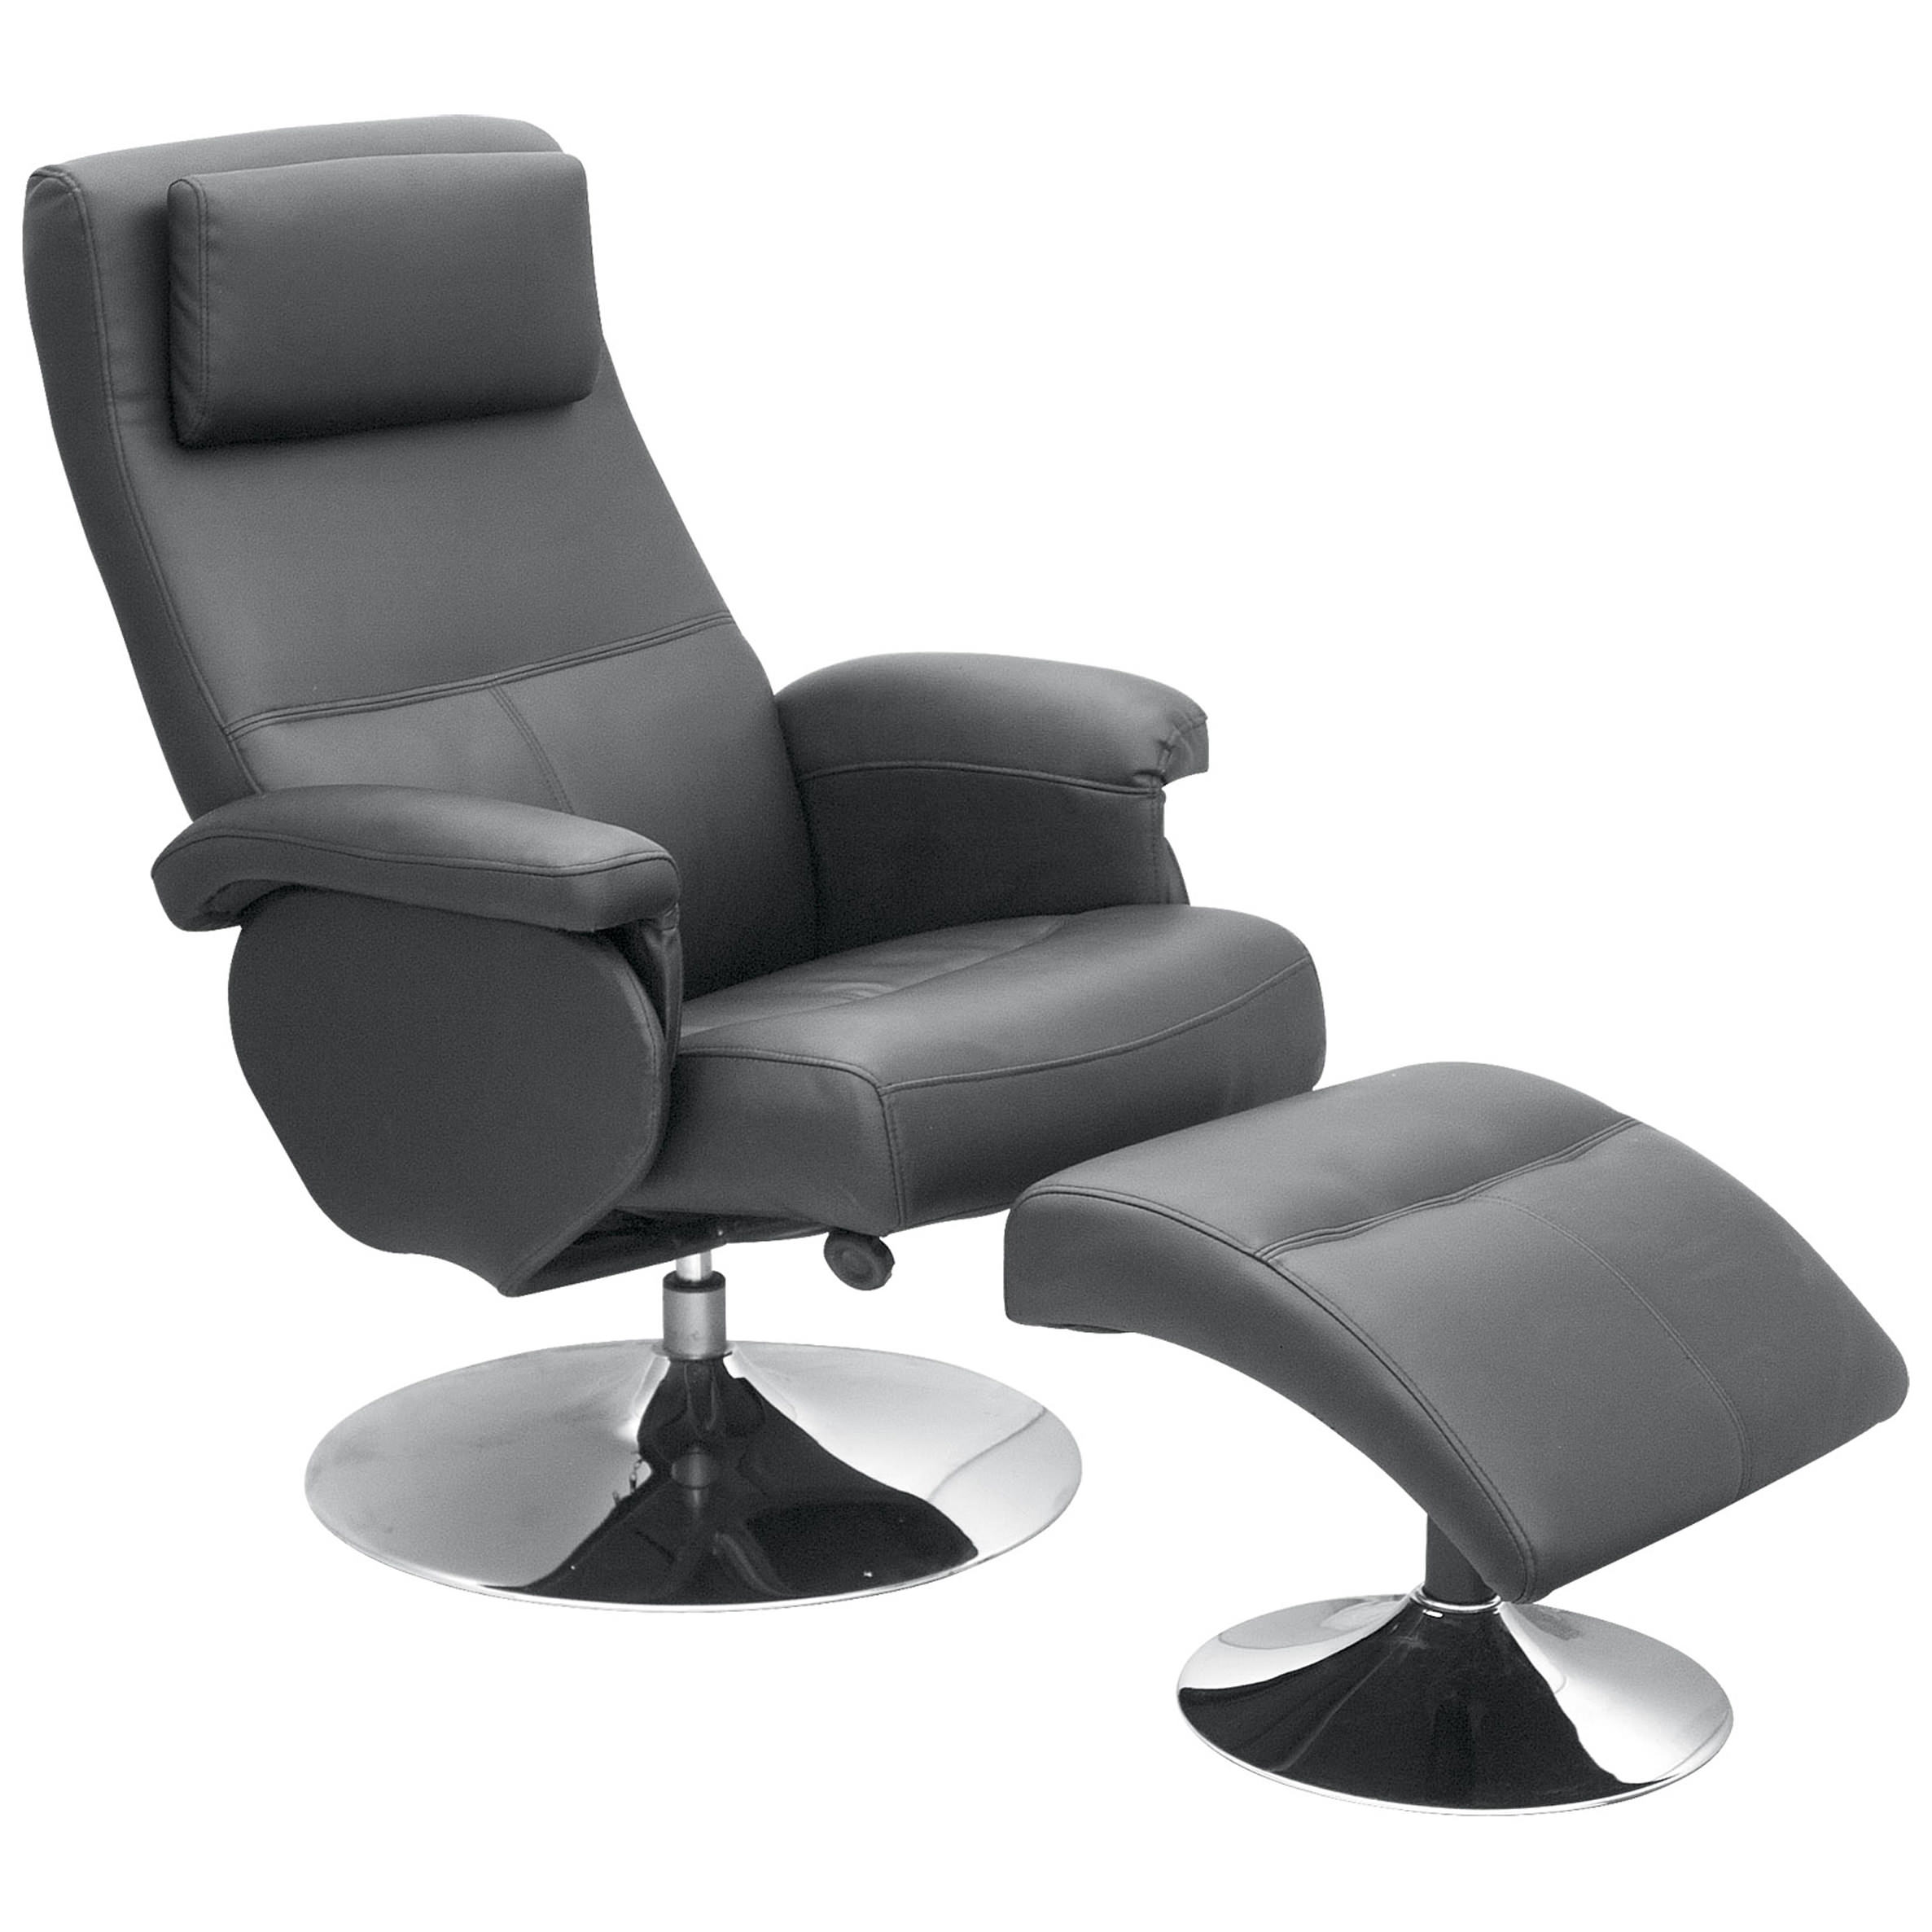 leather recliner reclining chair armchair seat 1 seater sofa black